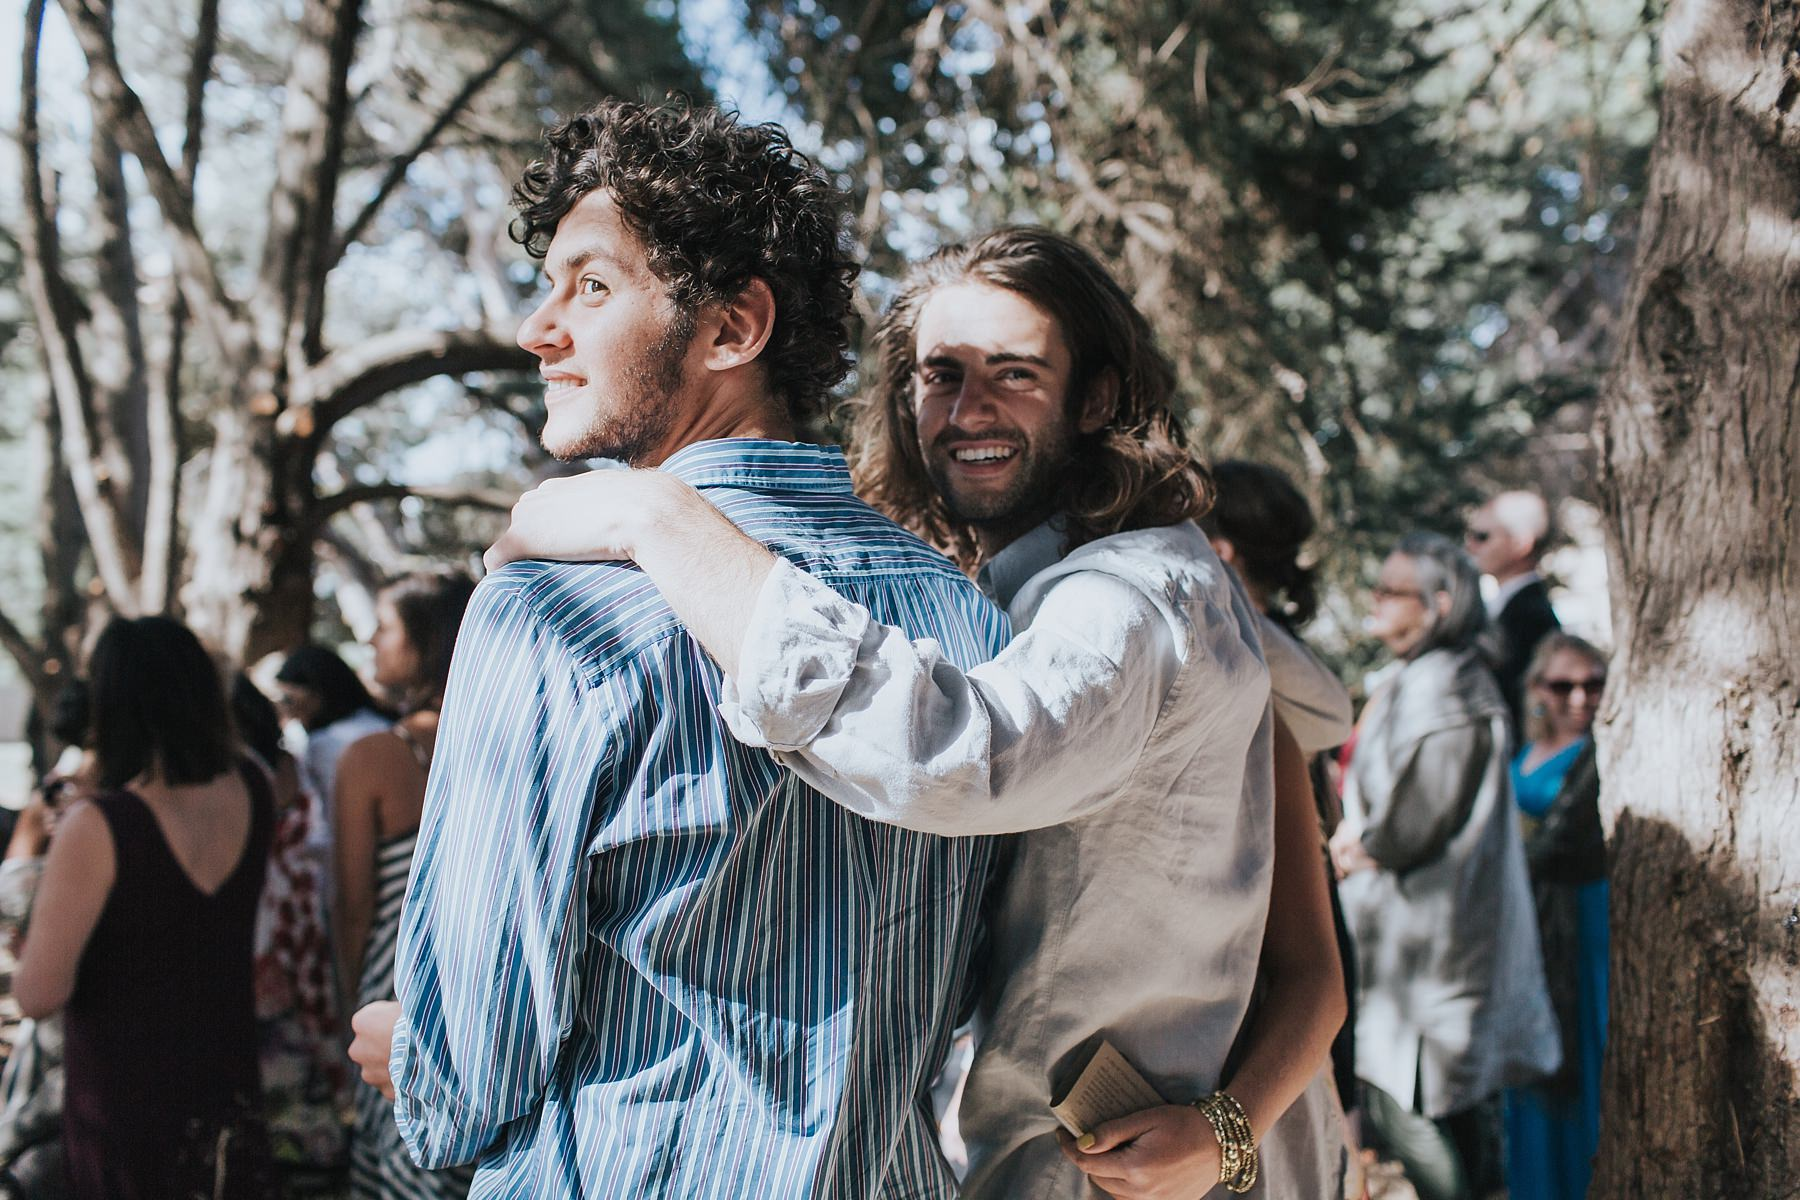 brides brothers watch their sister walk down the aisle